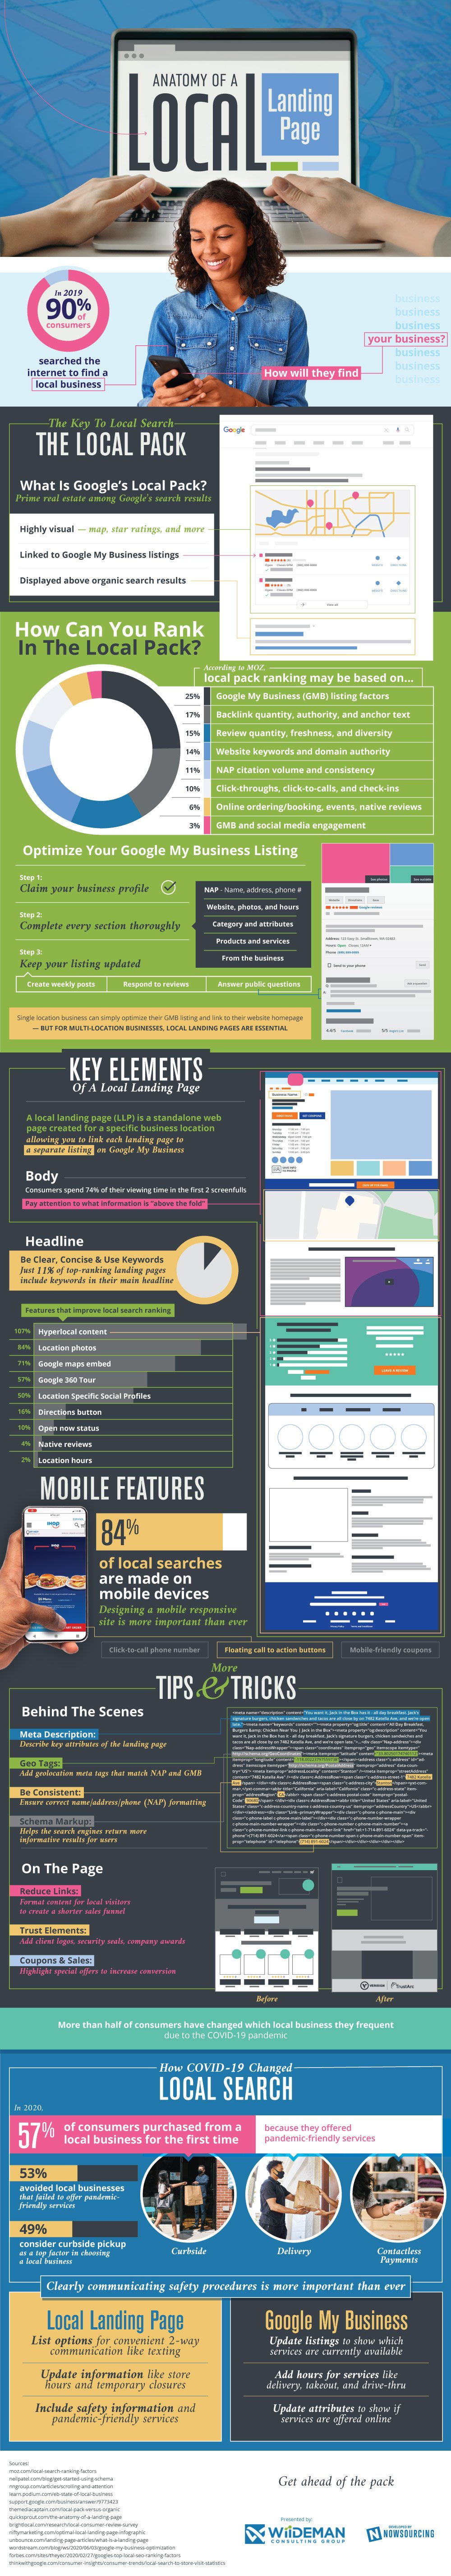 The Anatomy of a Local Landing Page